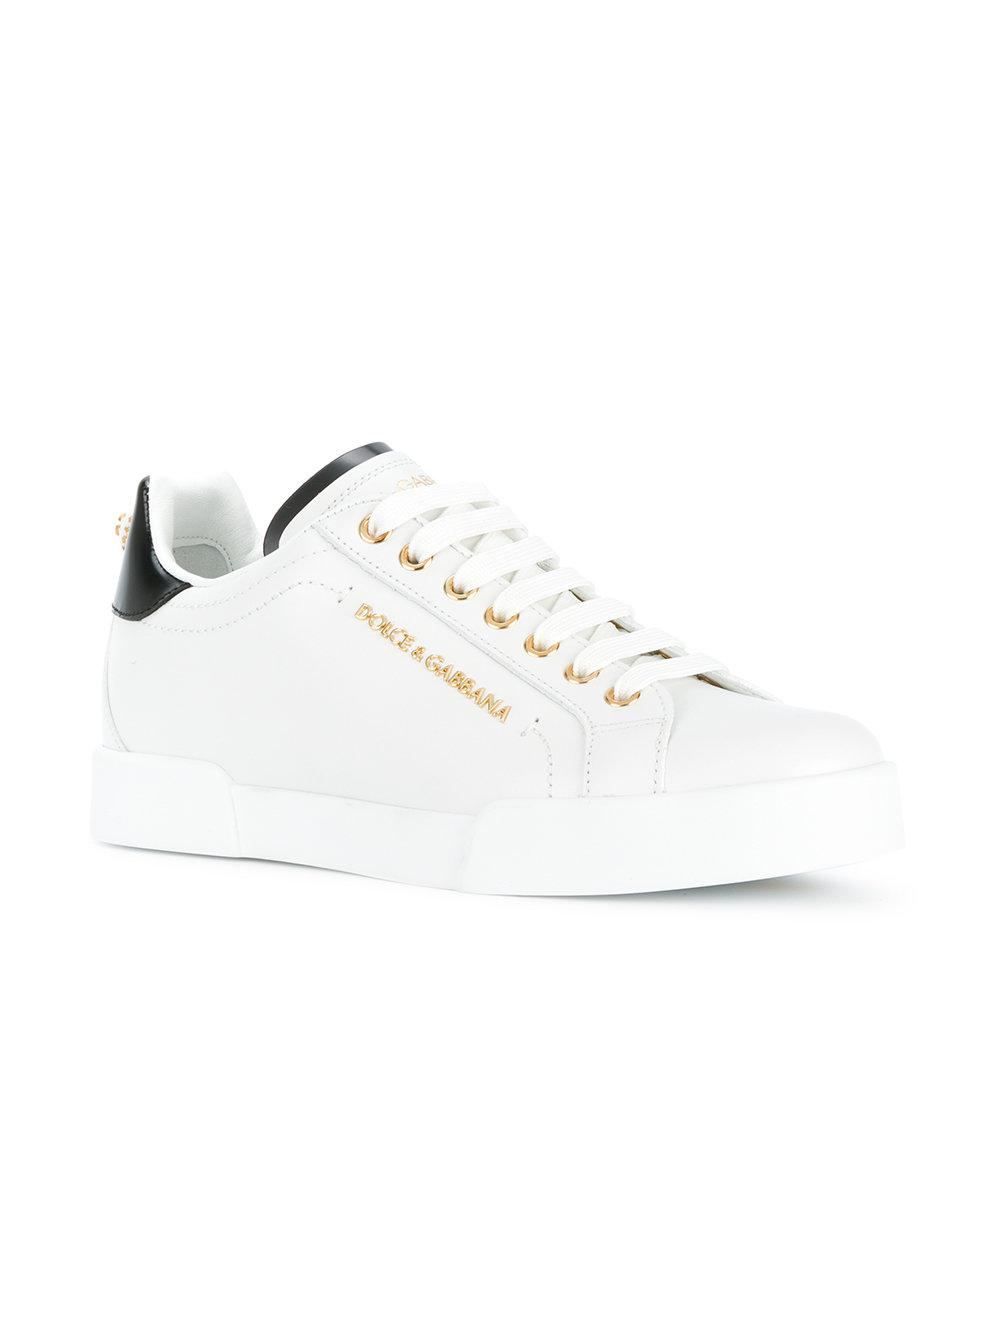 1c14aebcdbf Lyst - Dolce   Gabbana Two-tone Logo Sneakers in White - Save 11%